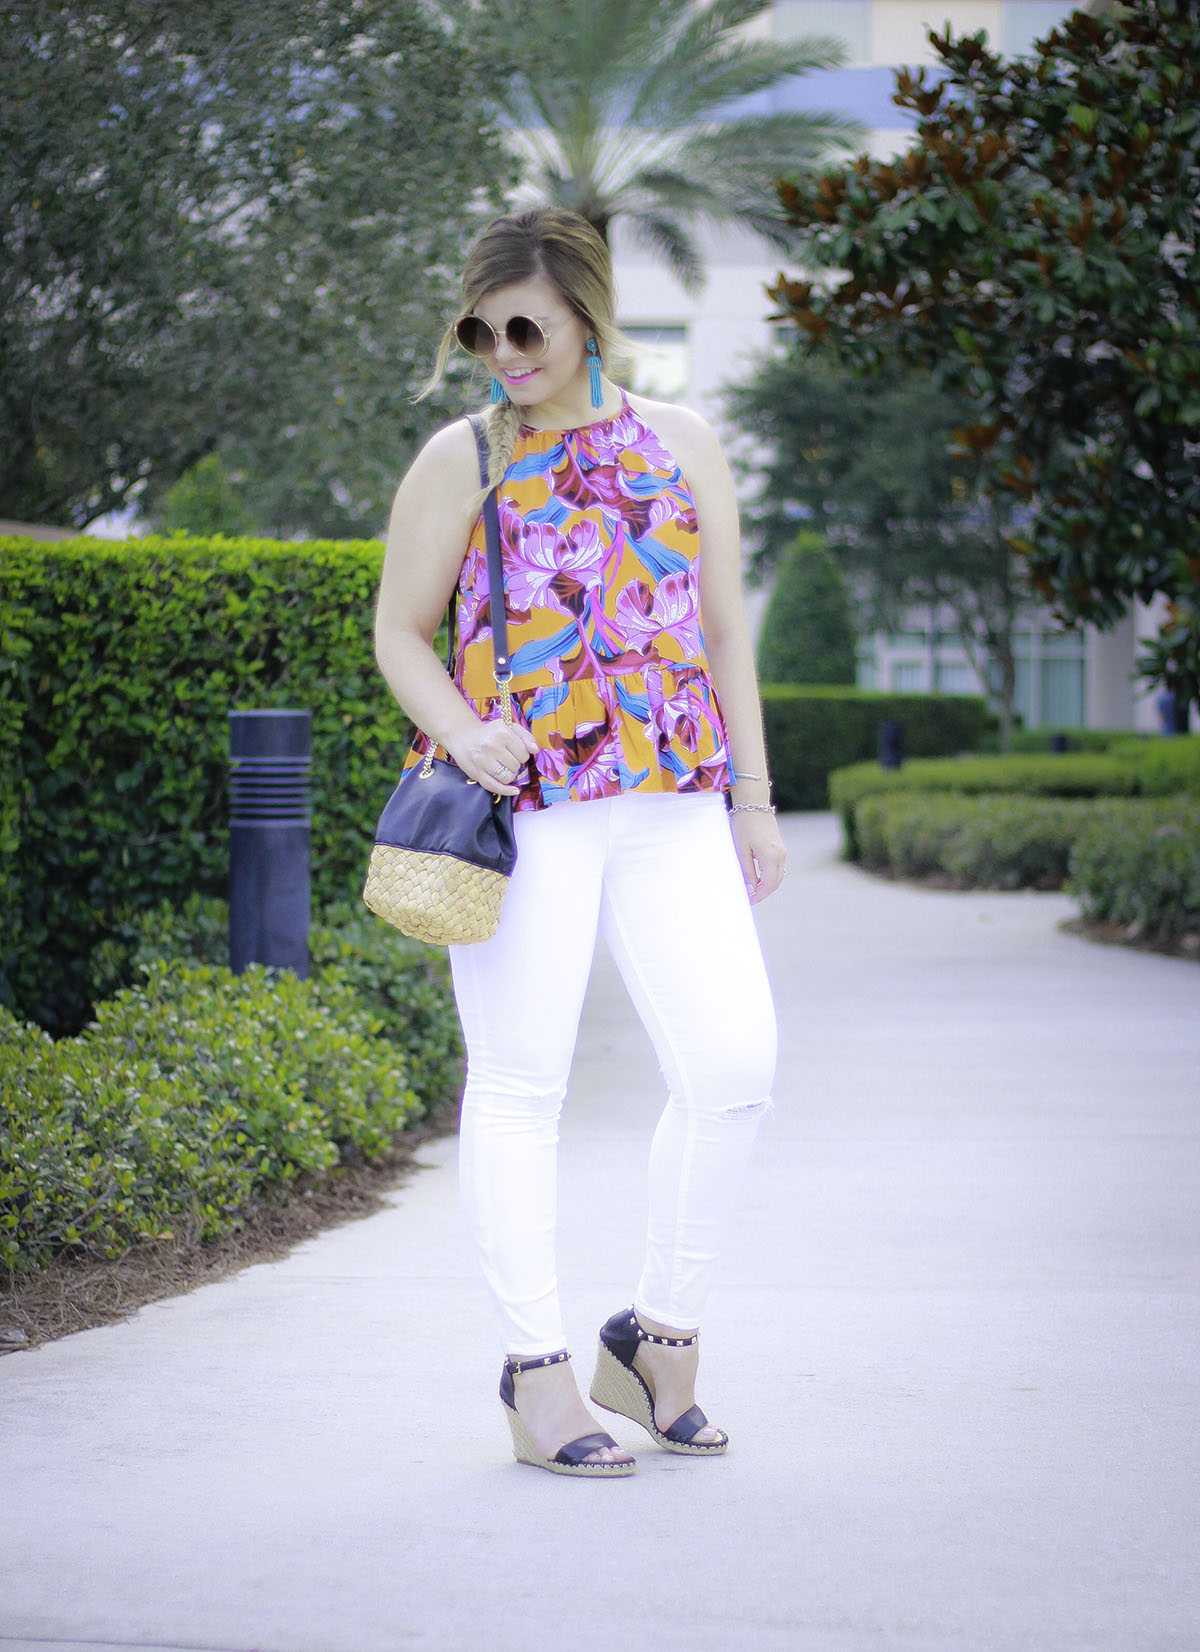 Blogher17 Recap, BlogHer Conference, Orlando FL, Florida Vacation, Hilton Bonnet Creek Florida, Disney, Asos Floral Pepllum top, J Crew White Jeans, Marc Fisher Espadrille Wedges, Turquoise Tassel Earrings, Zara Leather + Straw Bag